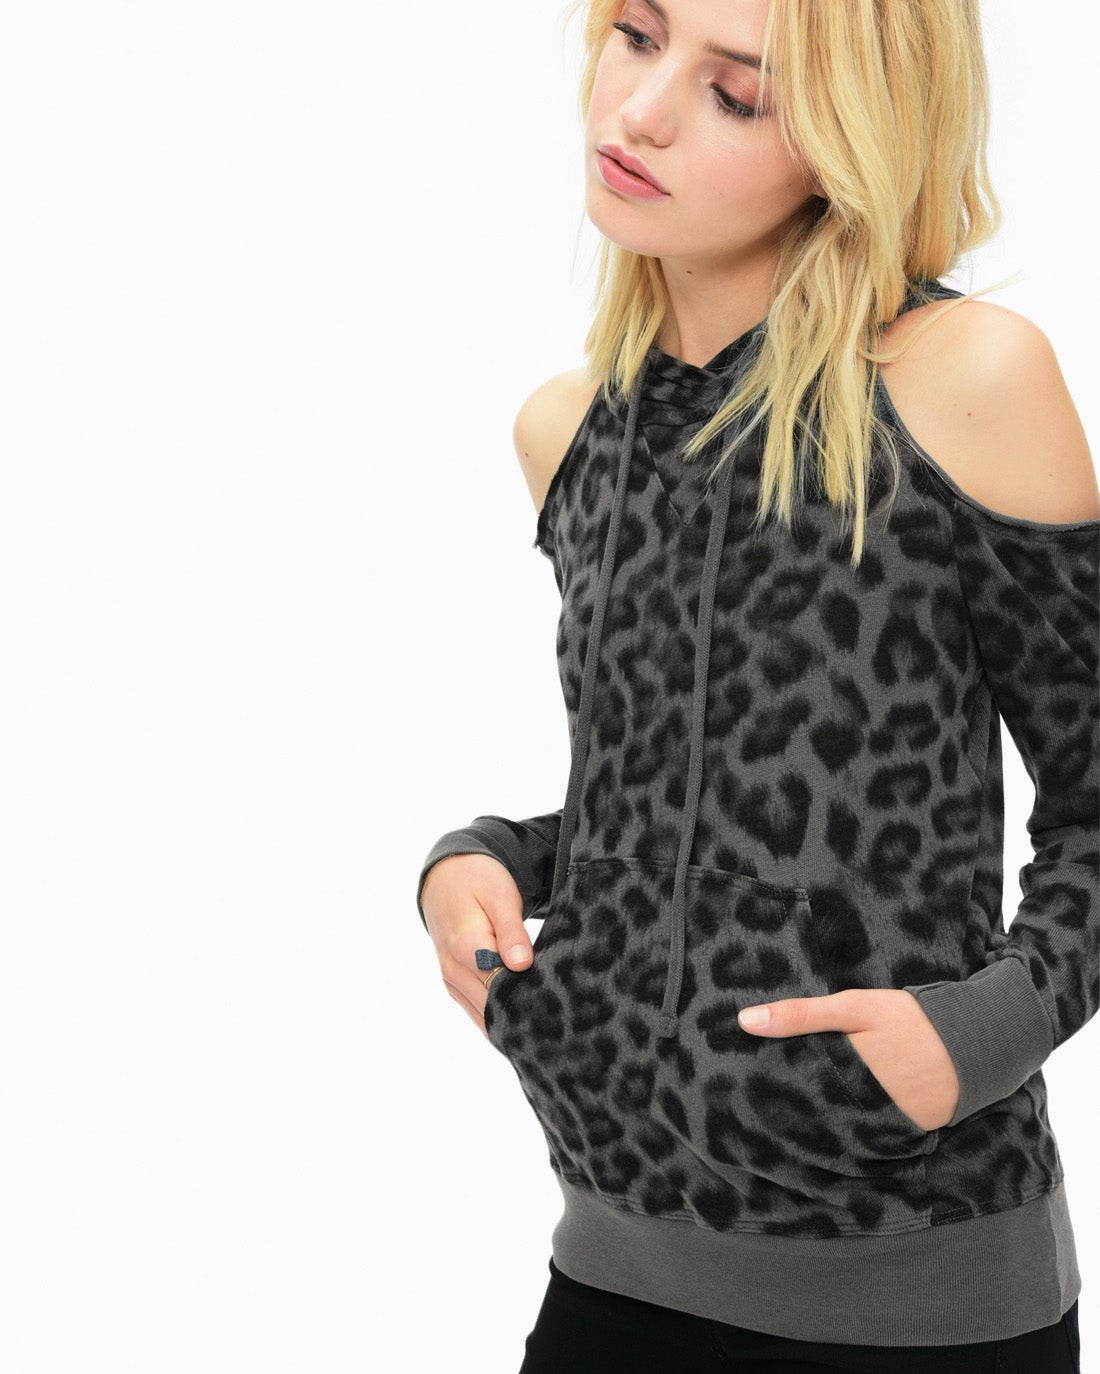 Splendid Women's Printed Leopard Cold Shoulder Sweatshirt